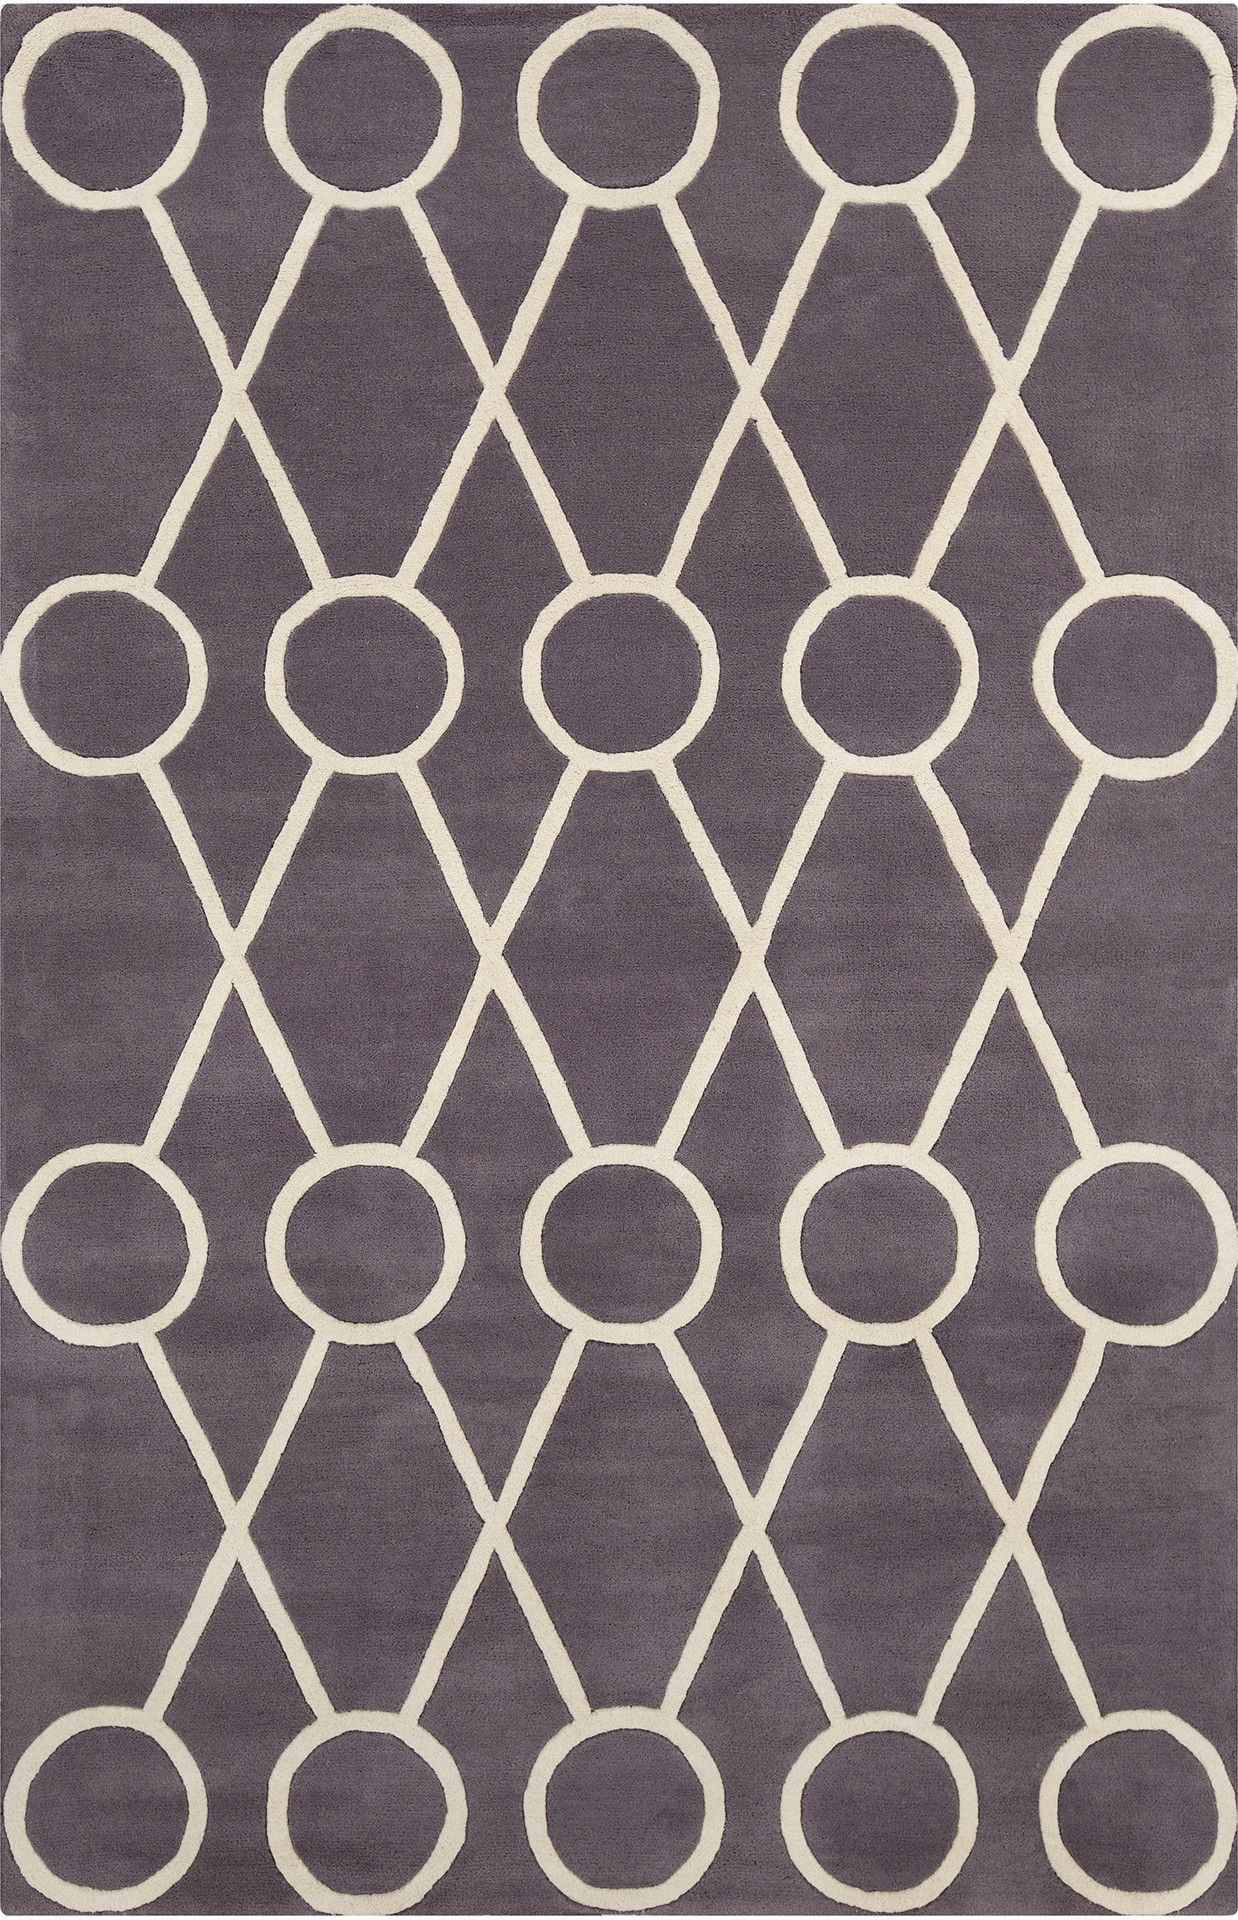 Stella patterned contemporary wool dark graycream area rug dark